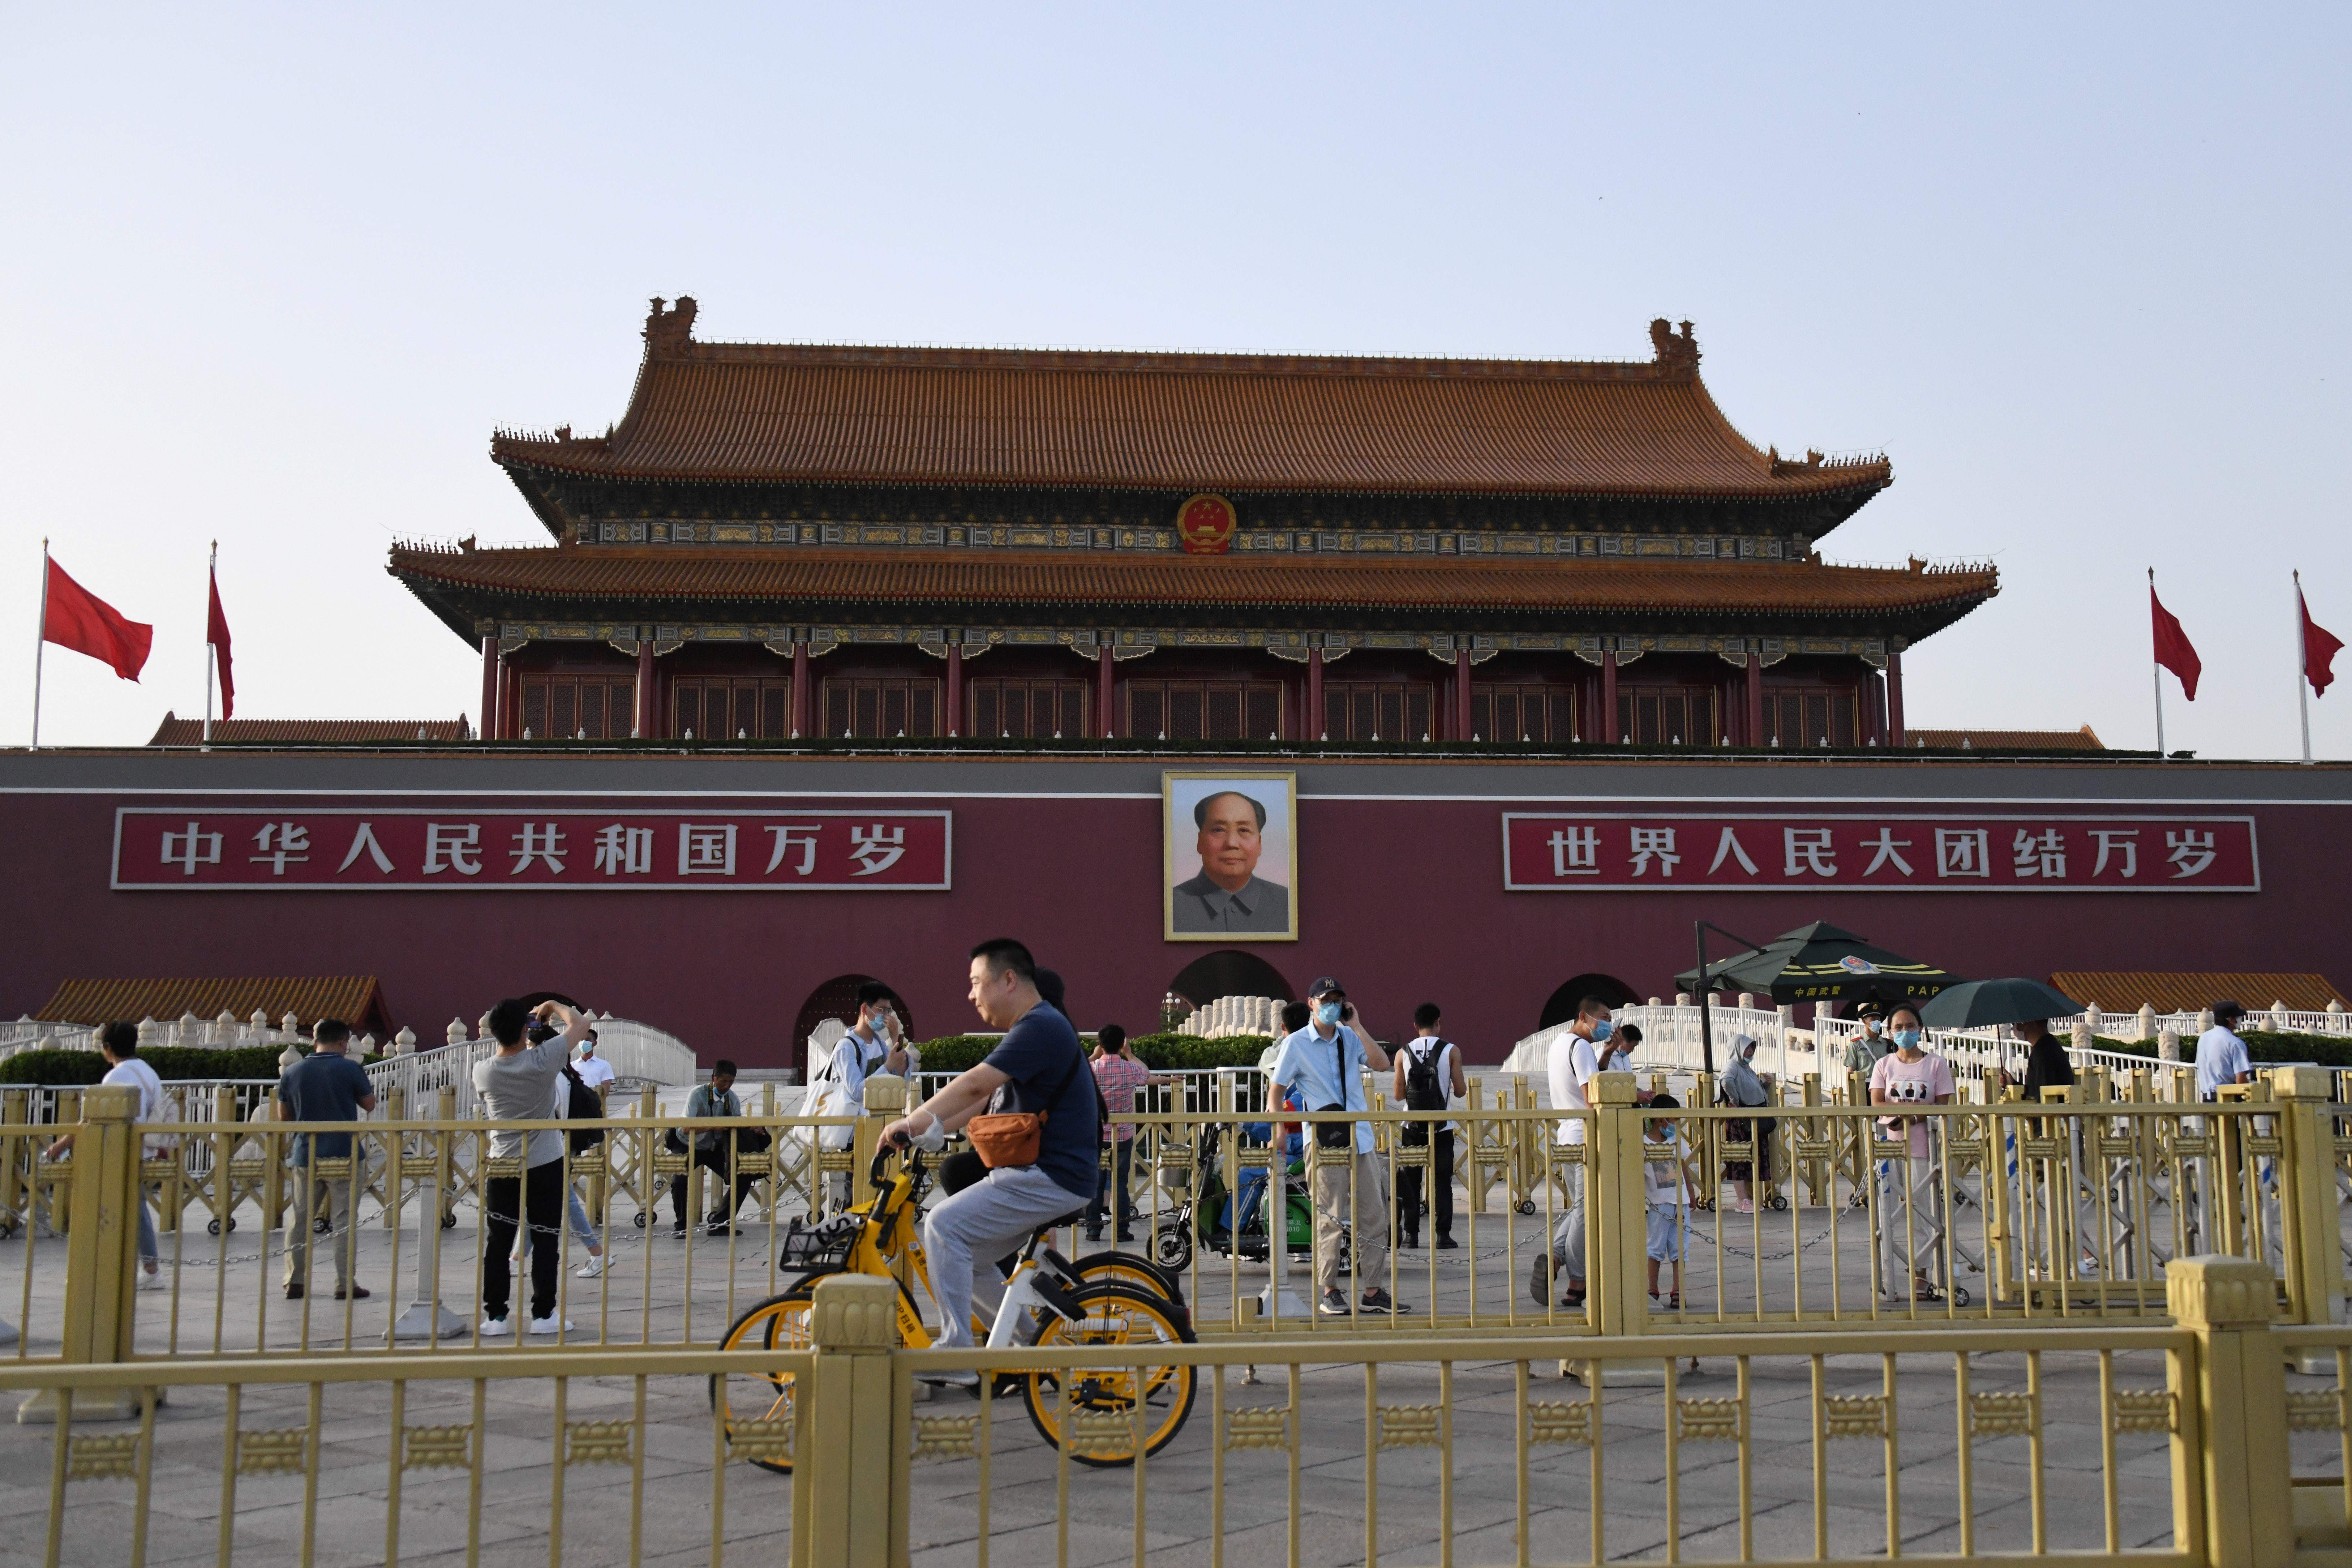 People cycle past Tiananmen gate on the eve of the 31st anniversary of the June 4, 1989 crackdown on pro-democracy protests, in Beijing on June 3, 2020. (Photo by GREG BAKER/AFP via Getty Images)